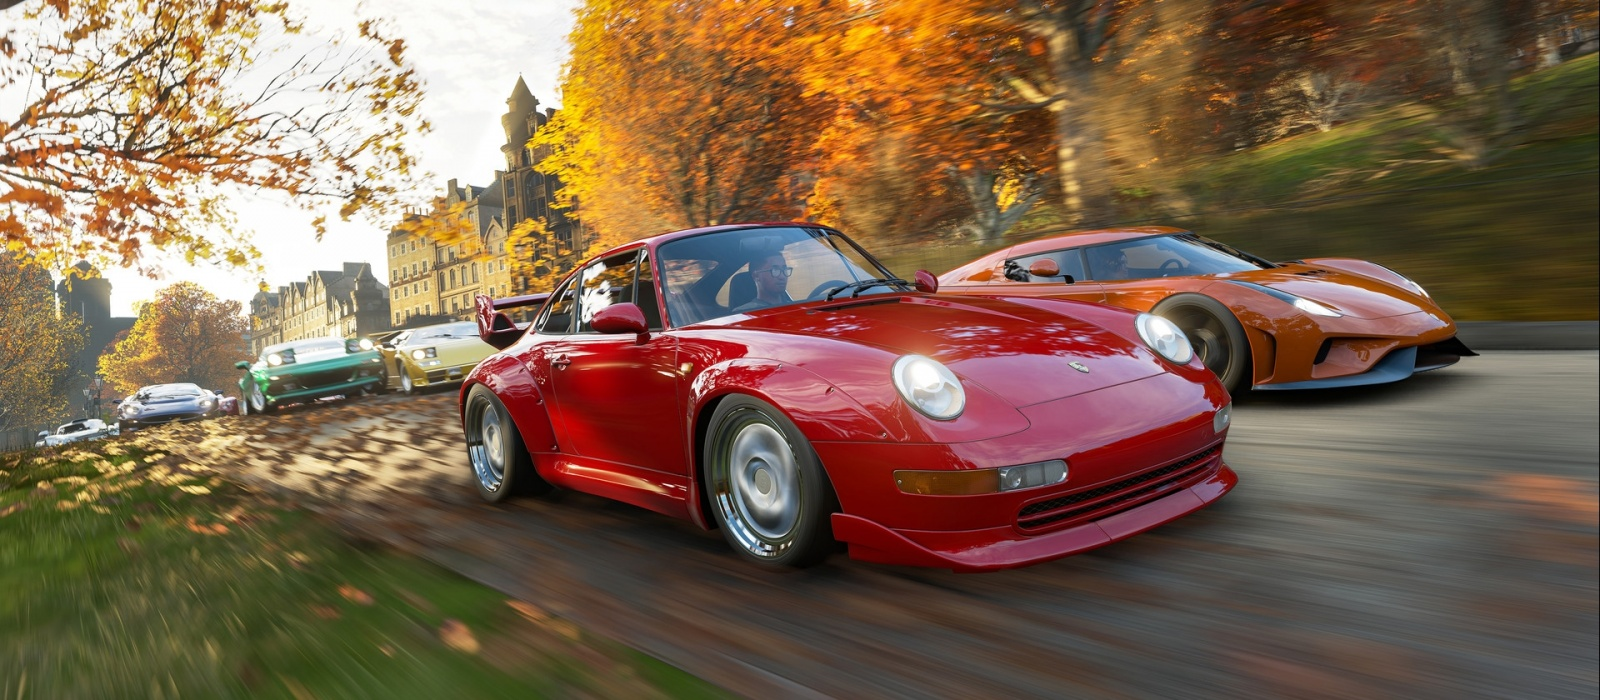 How to make a lot of money in Forza Horizon 4